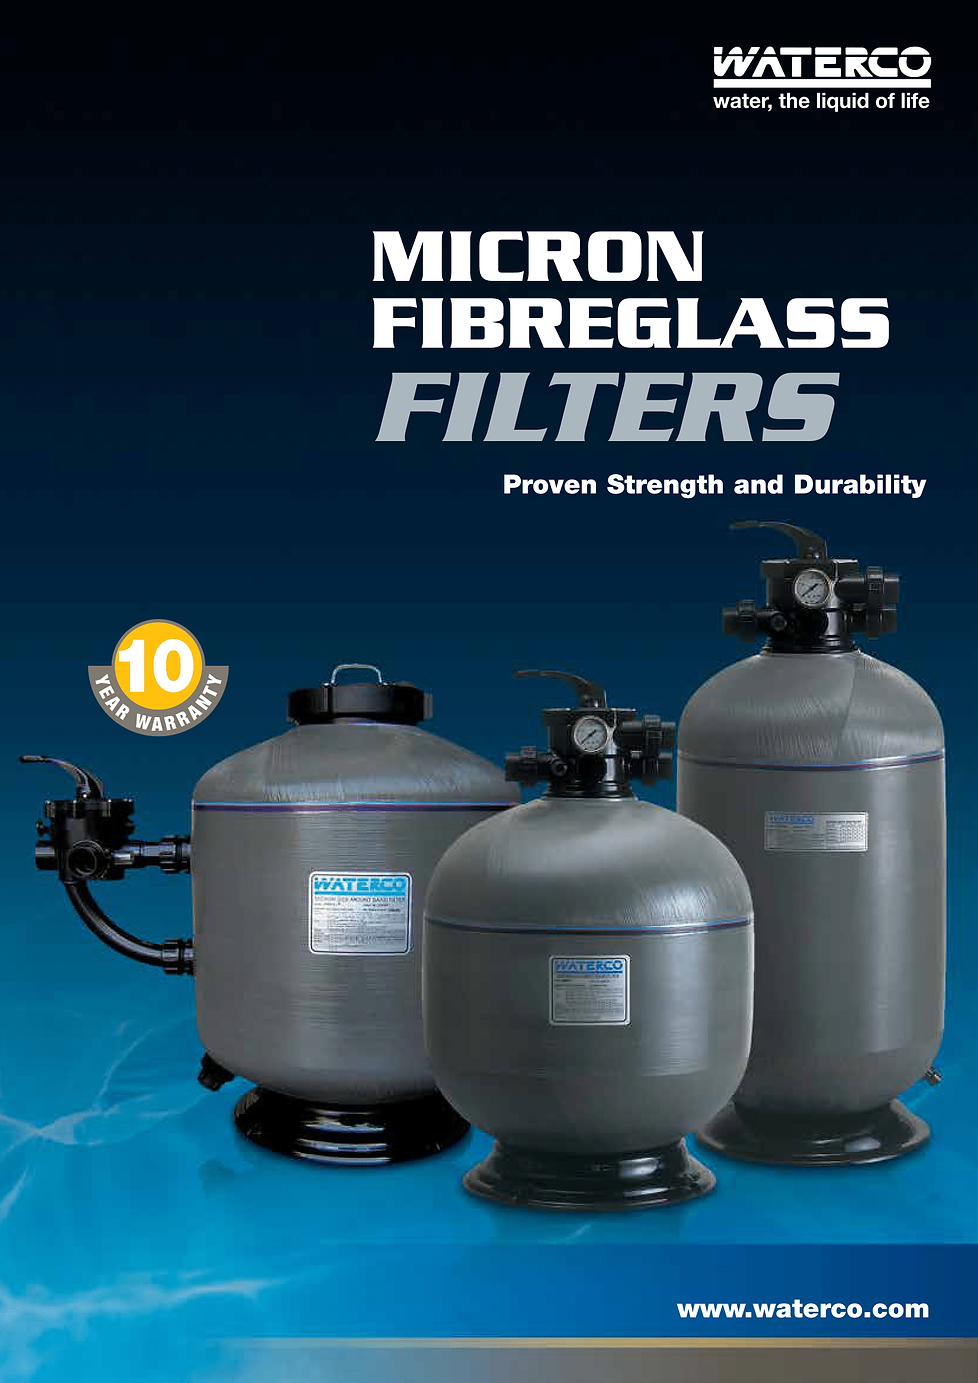 zzb1271-micron-filter-brochure-lo-res-29